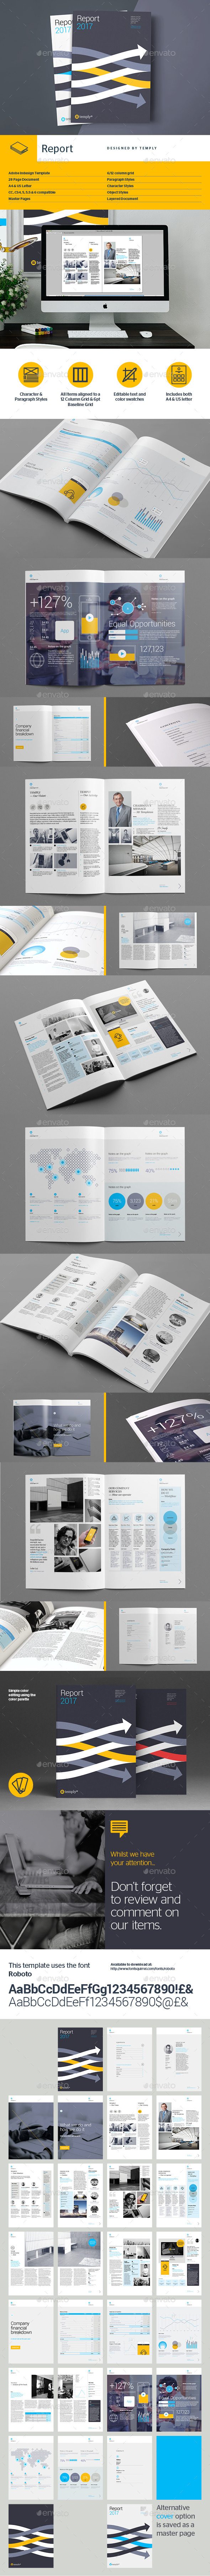 GraphicRiver Report Template 11959254